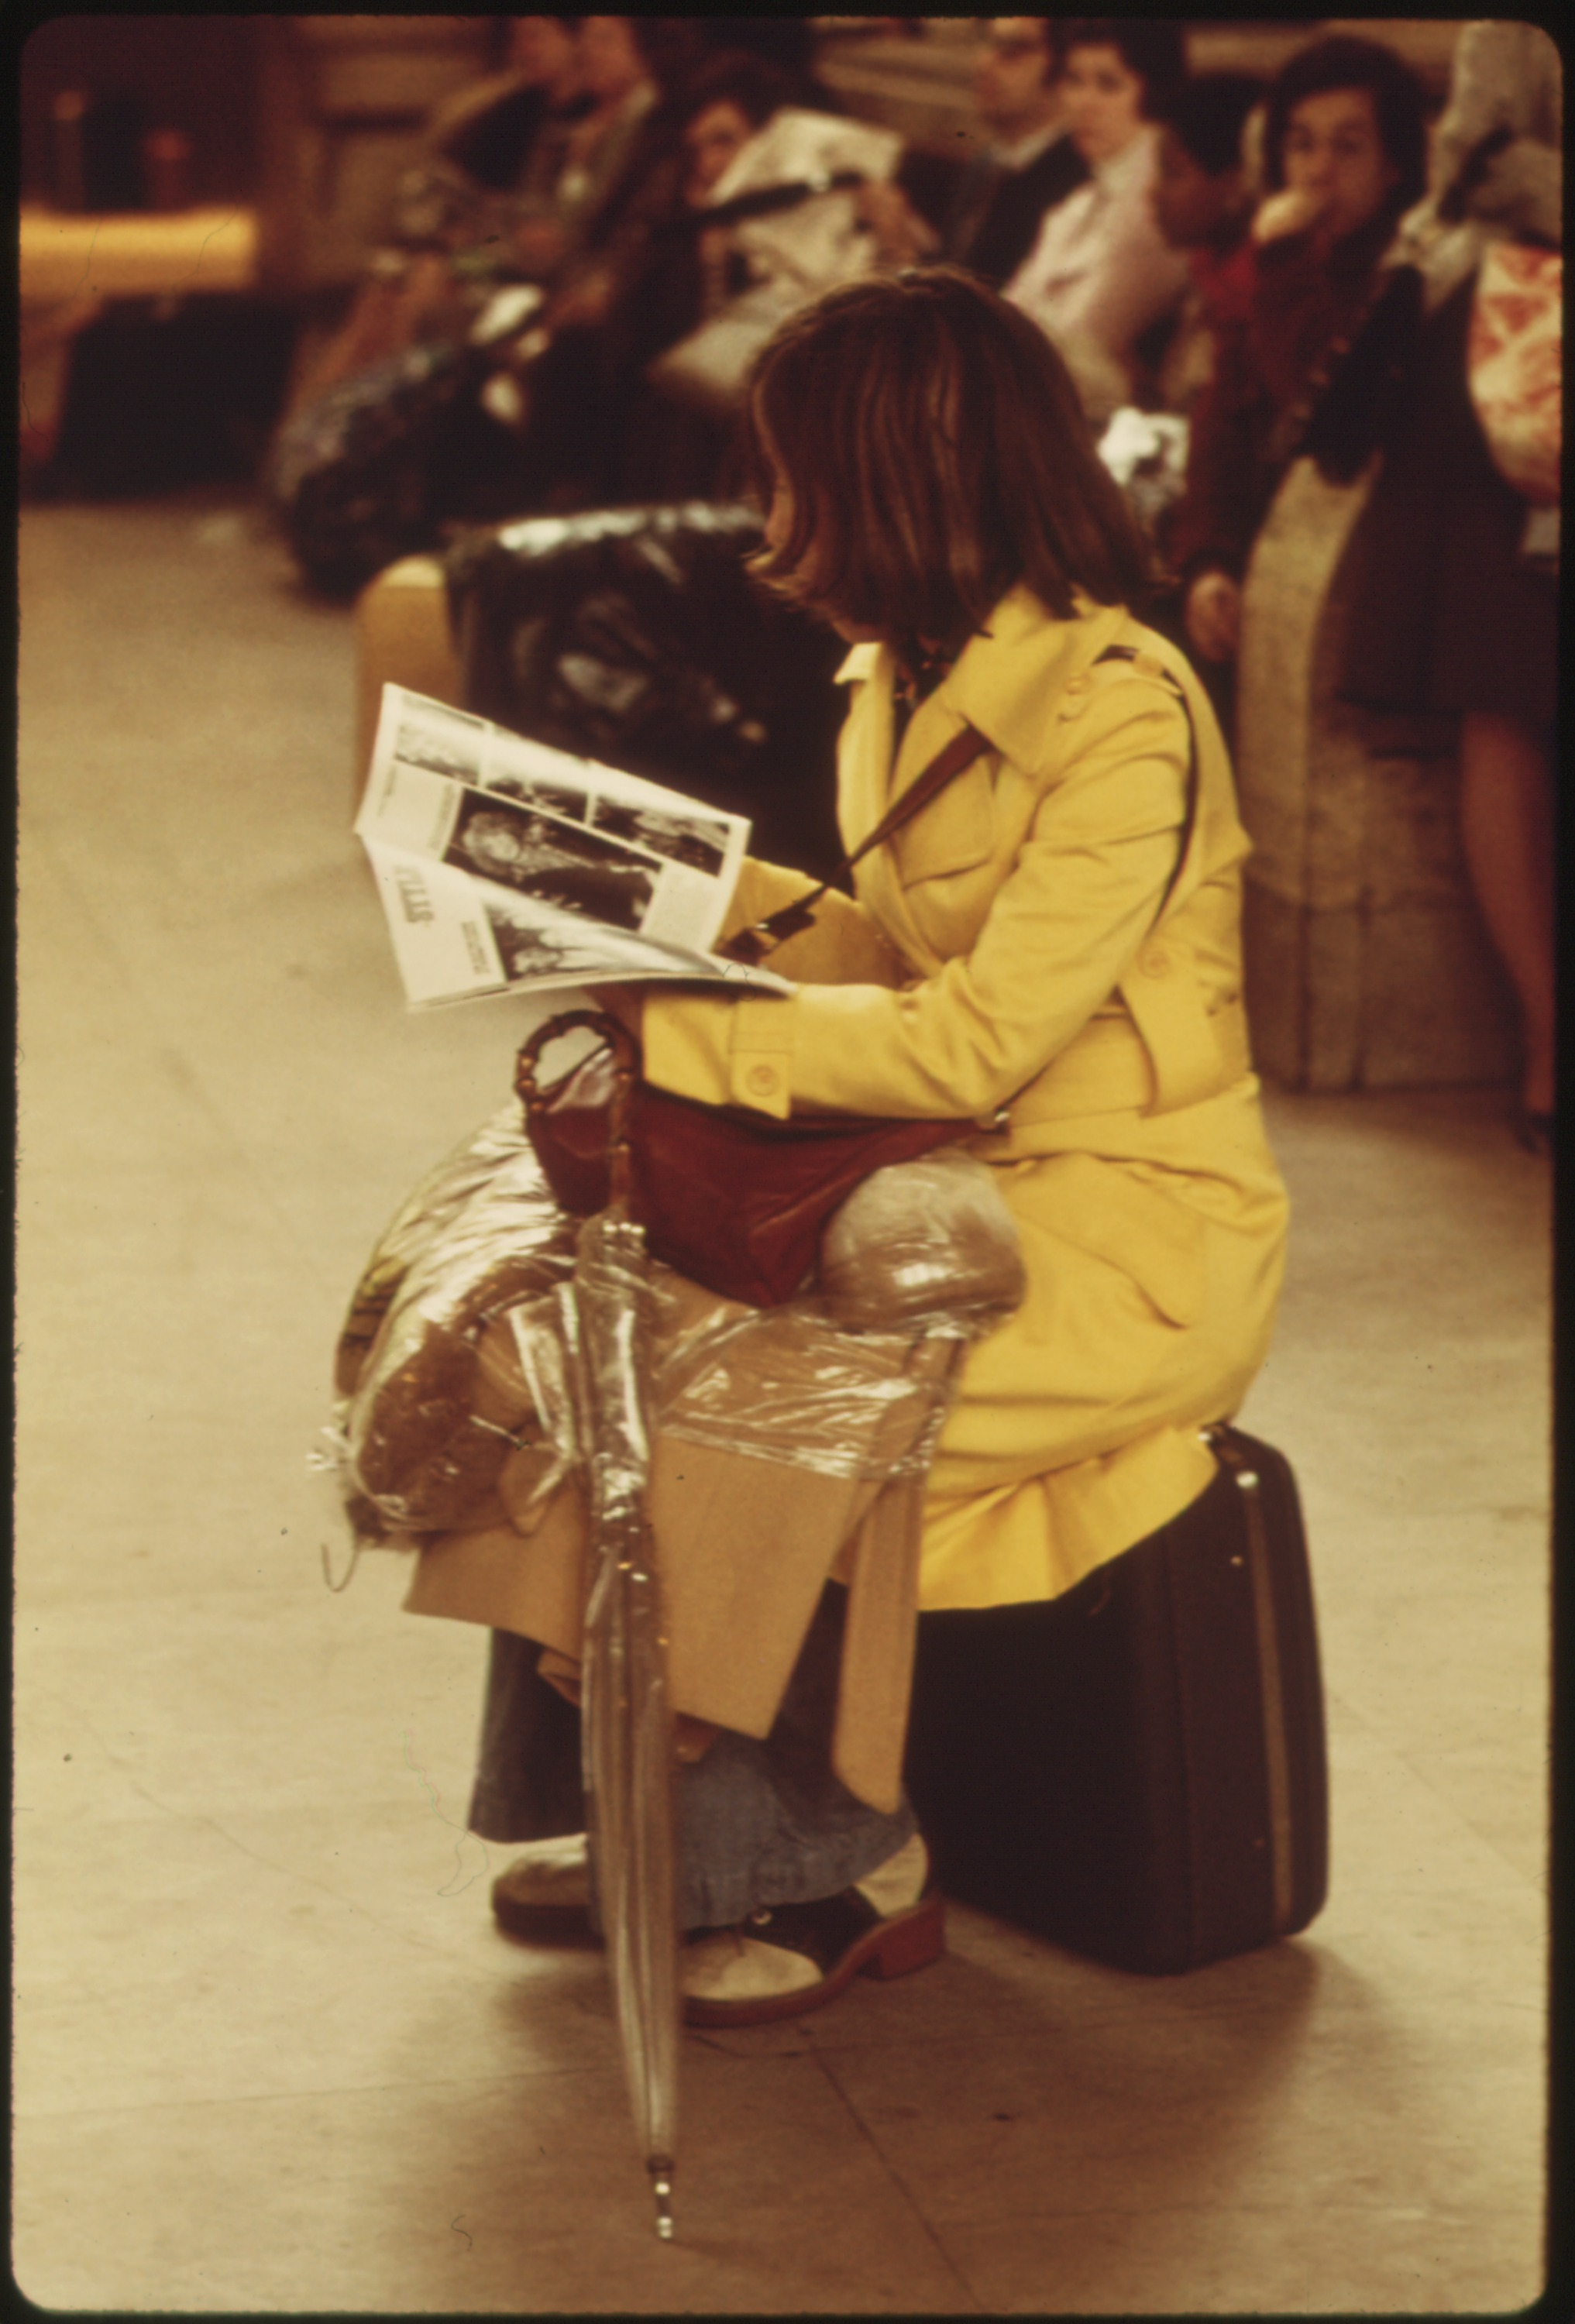 PASSENGER_PERCHES_ON_HER_SUITCASE_WHILE_WAITING_FOR_A_TRAIN_AT_THE_30TH_STREET_STATION_IN_PHILADELPHIA,_PENNSYLVANIA...._-_NARA_-_556699